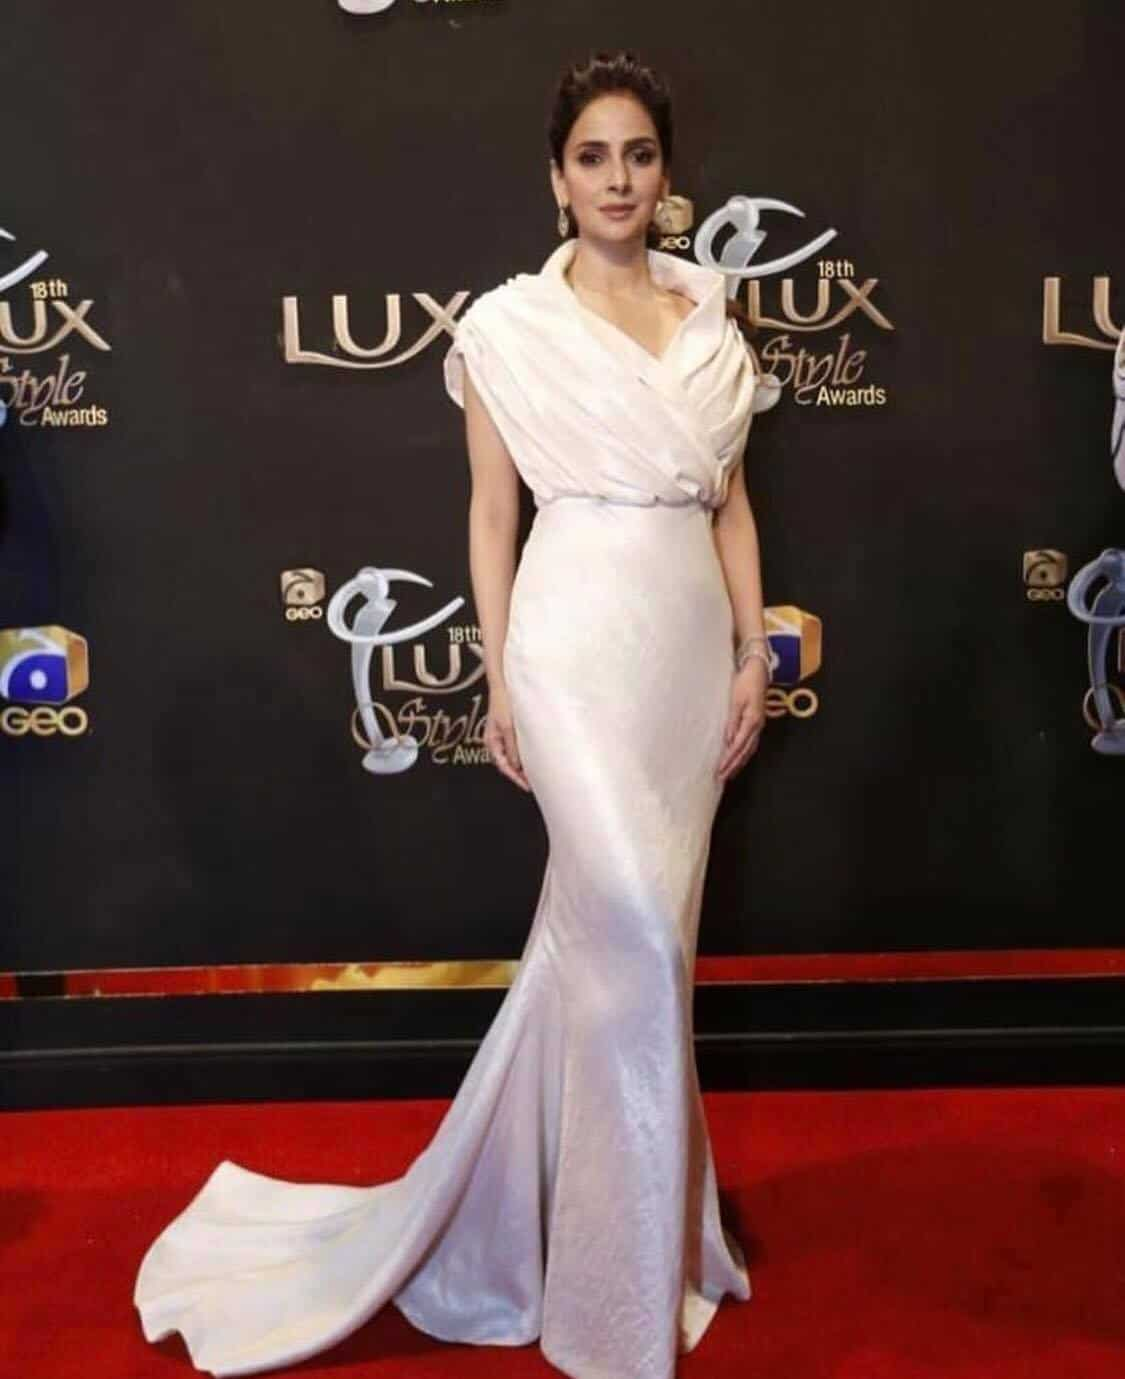 Lux Style Awards 2019 Best Dresses 7